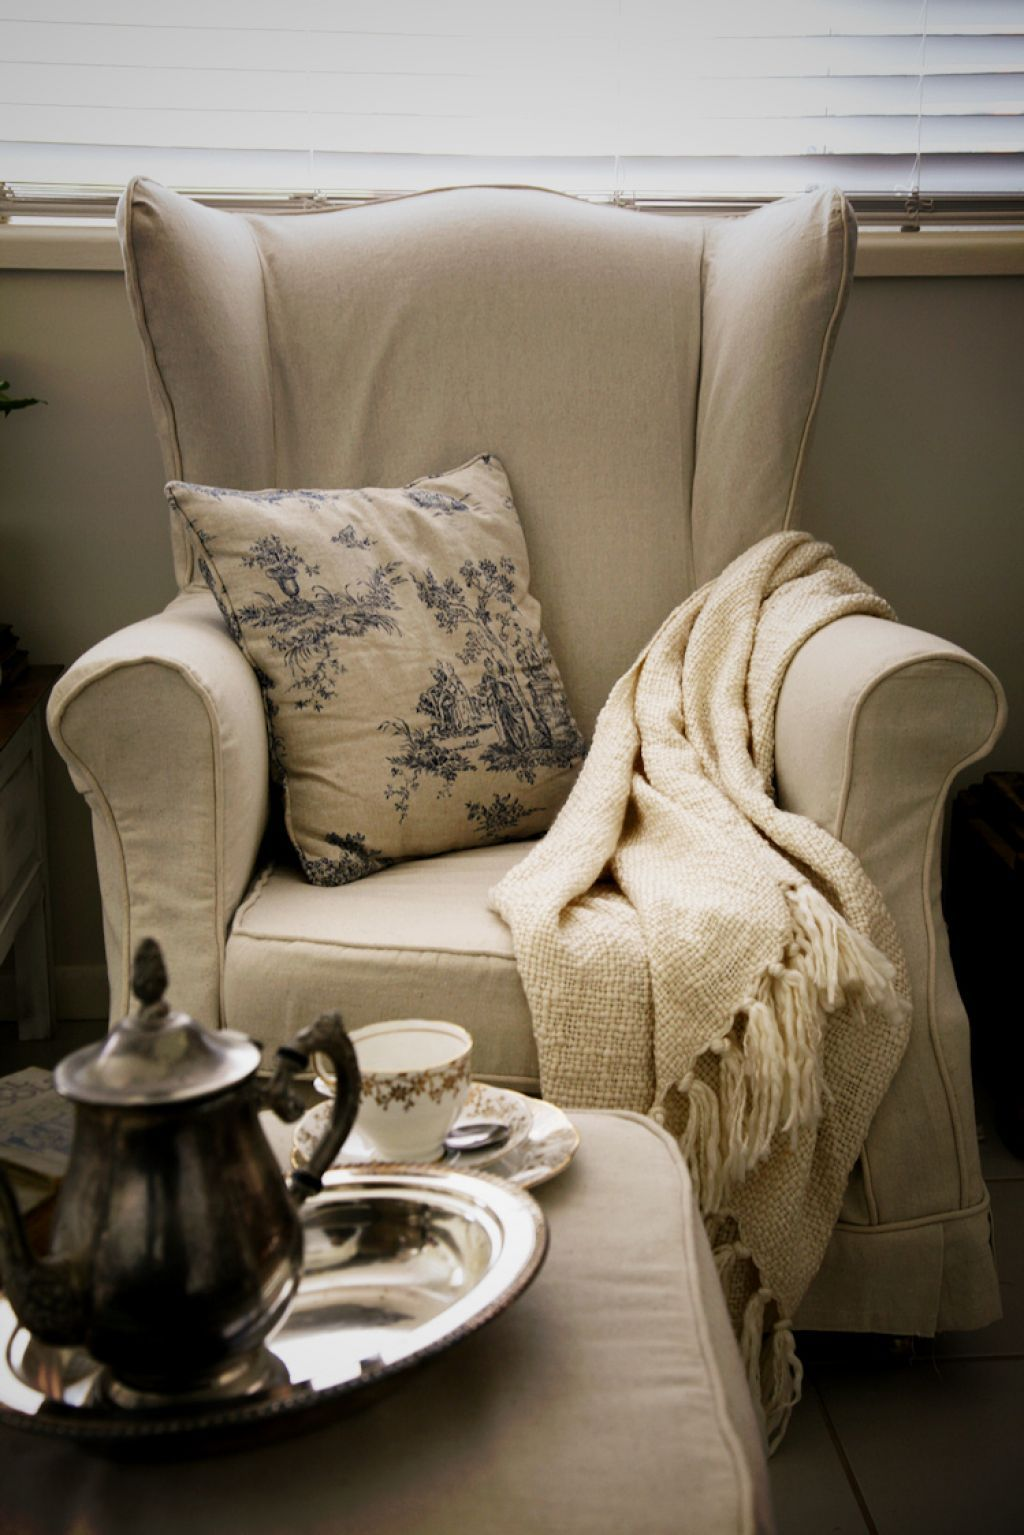 Chair Throw Covers Wingback Chair With Slipcover And Throw Furniture Slipcovers